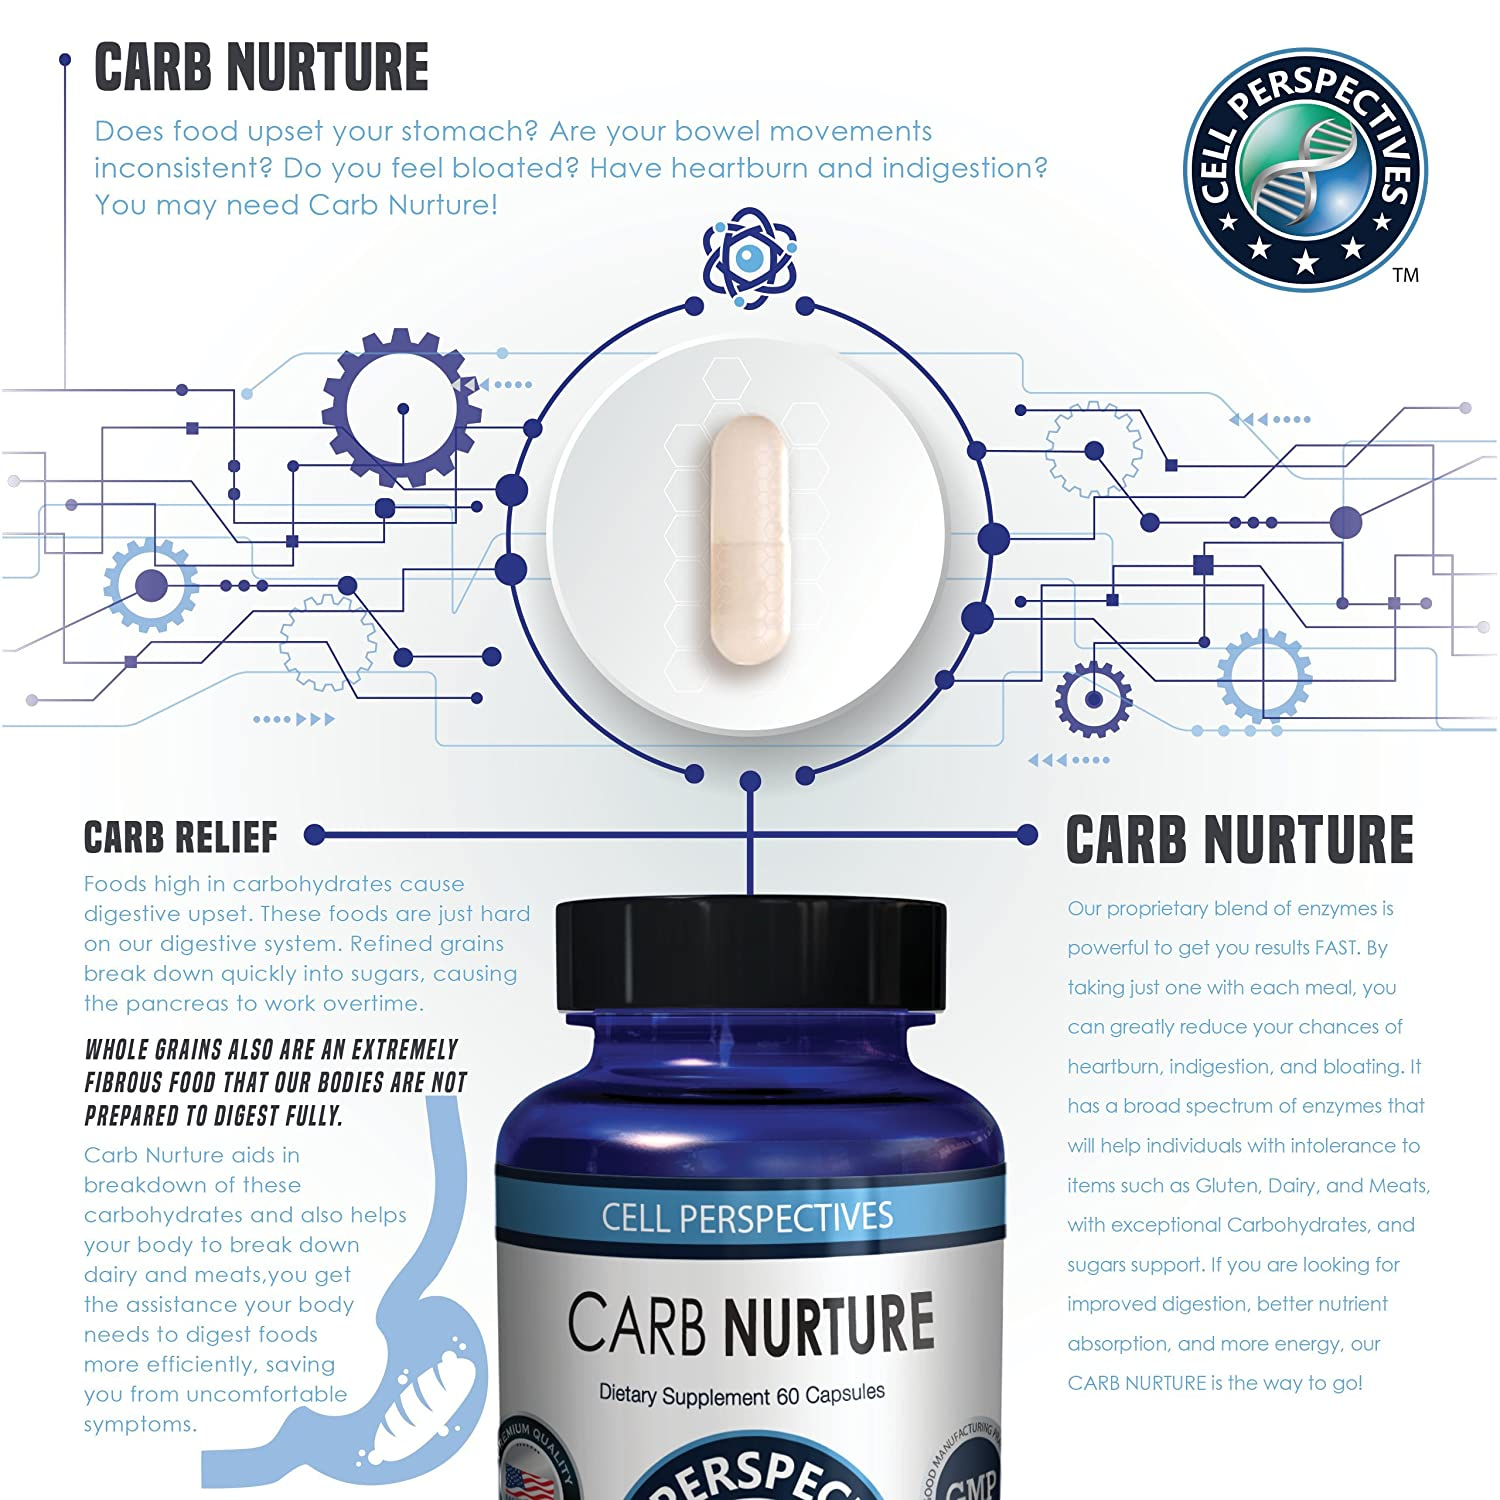 Amazon.com: Carbohydrate Blocker Plant Digestive Enzymes Supplements for men and woman - Amylase, Protease ,Lipase for fat & lipids,Cellulase for cellulite ...